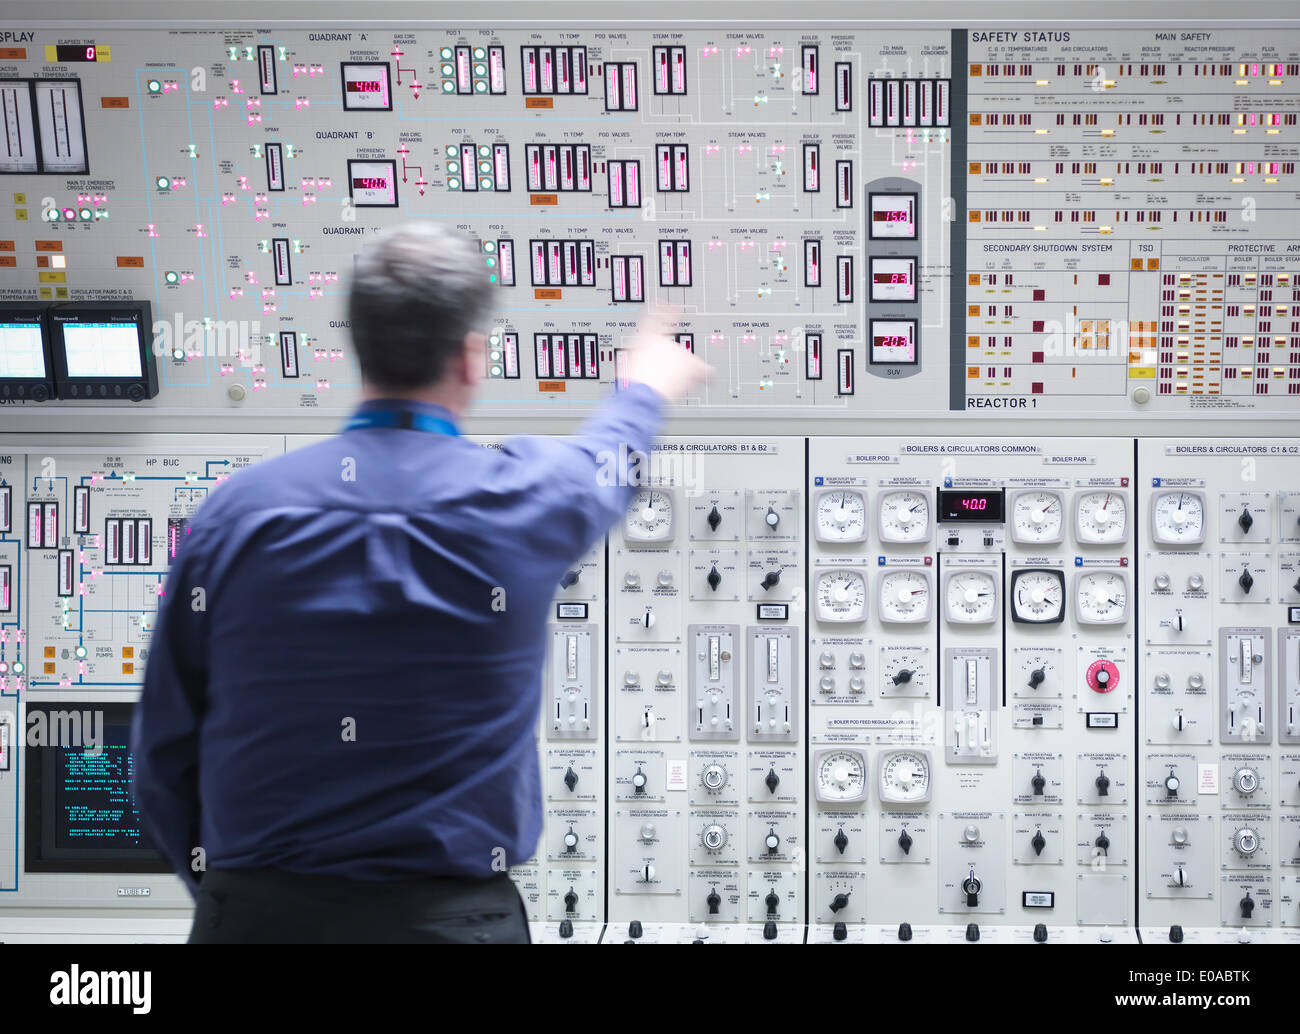 Operator adjusting controls in nuclear power station control room simulator - Stock Image